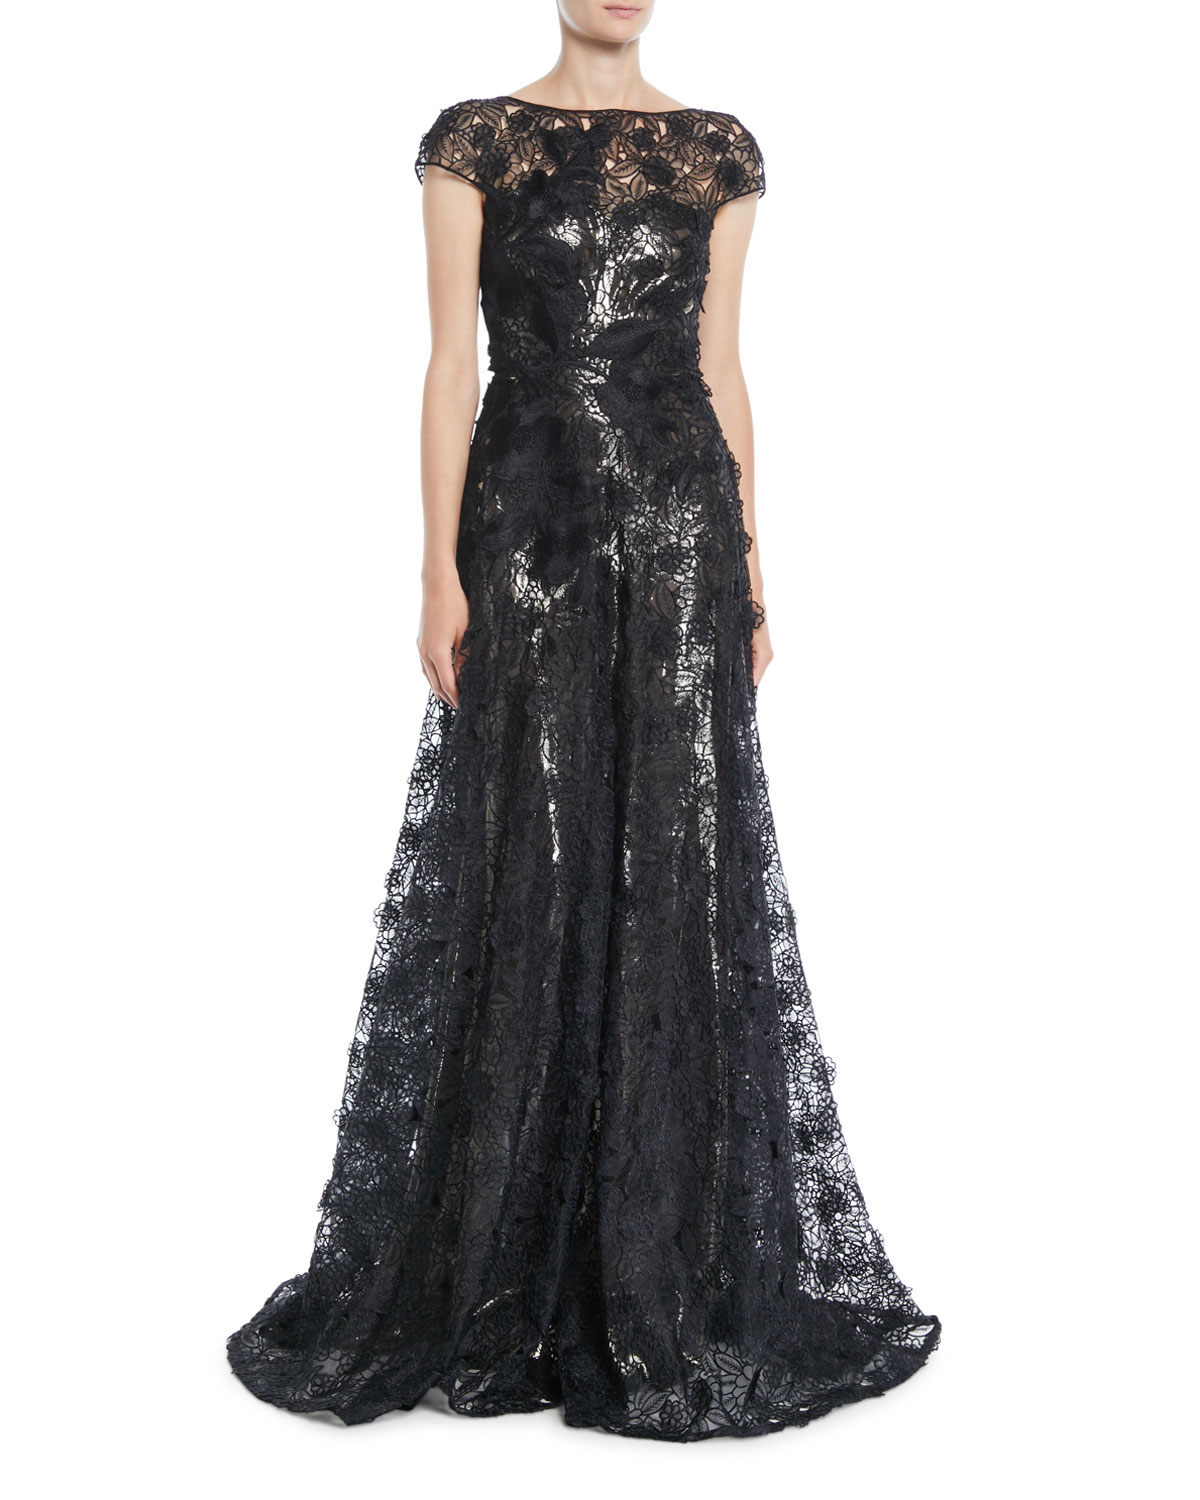 NAEEM KHAN Cap-Sleeve Fitted-Bodice A-Line Lace Evening Gown W/ Metallic Lining in Black Pattern